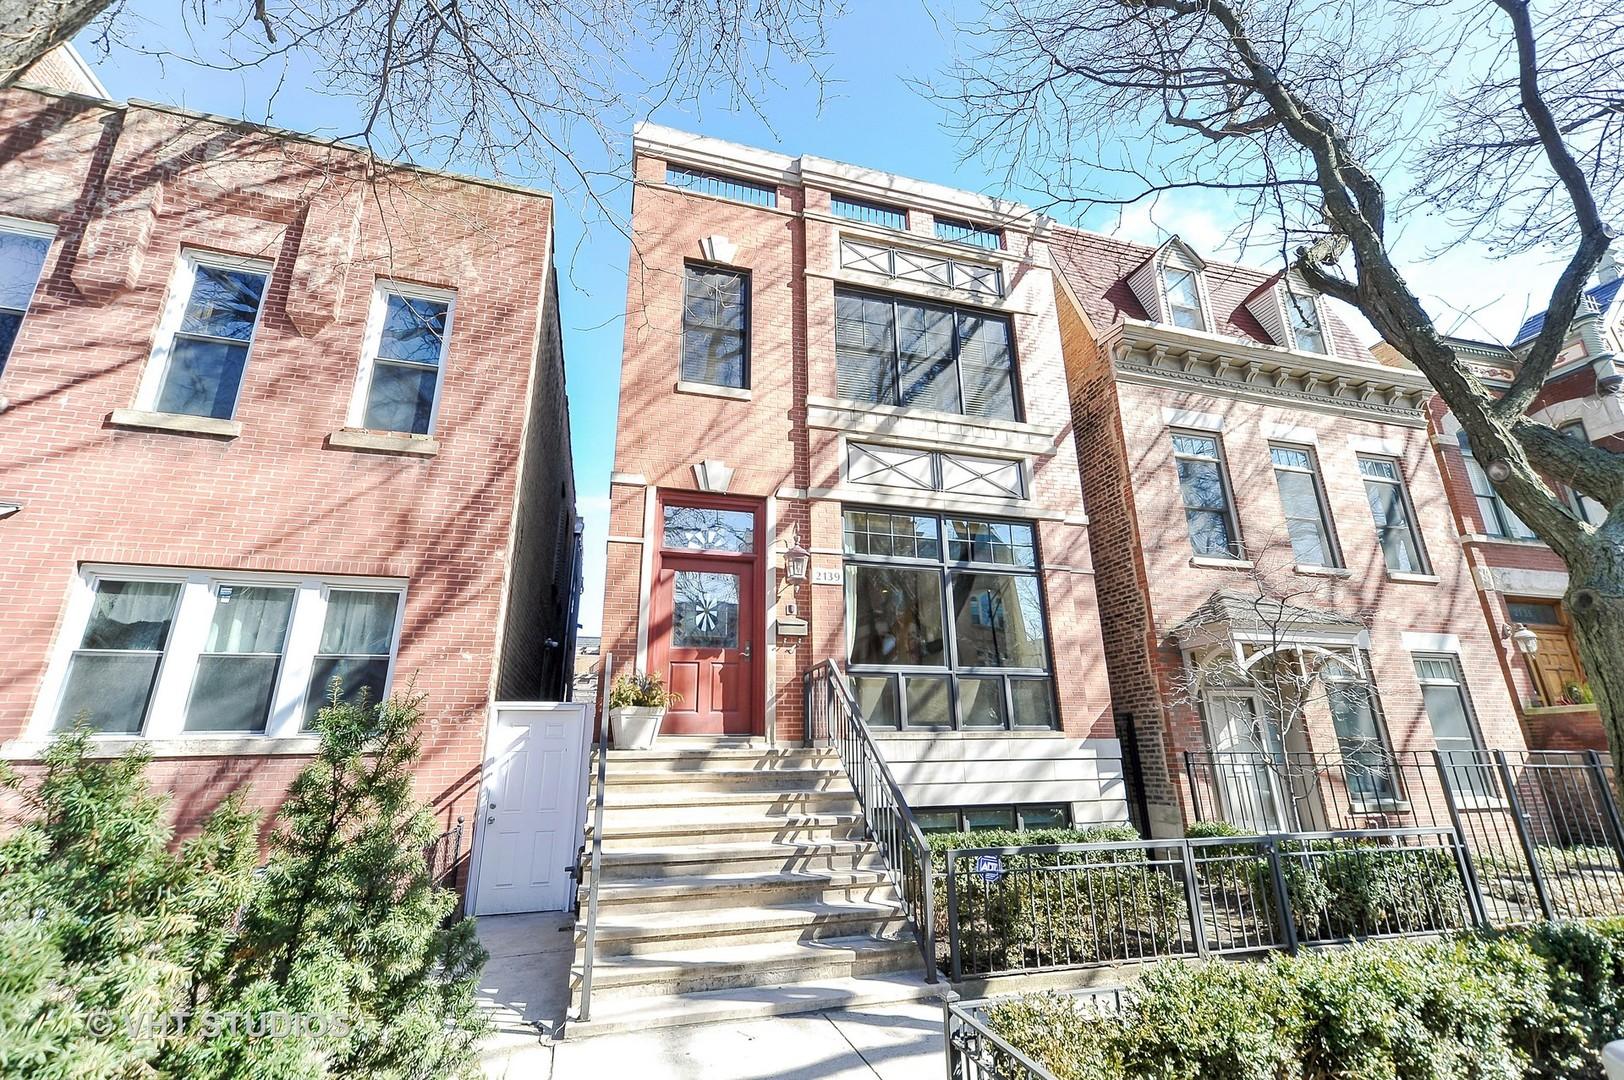 5 House in Lincoln Park